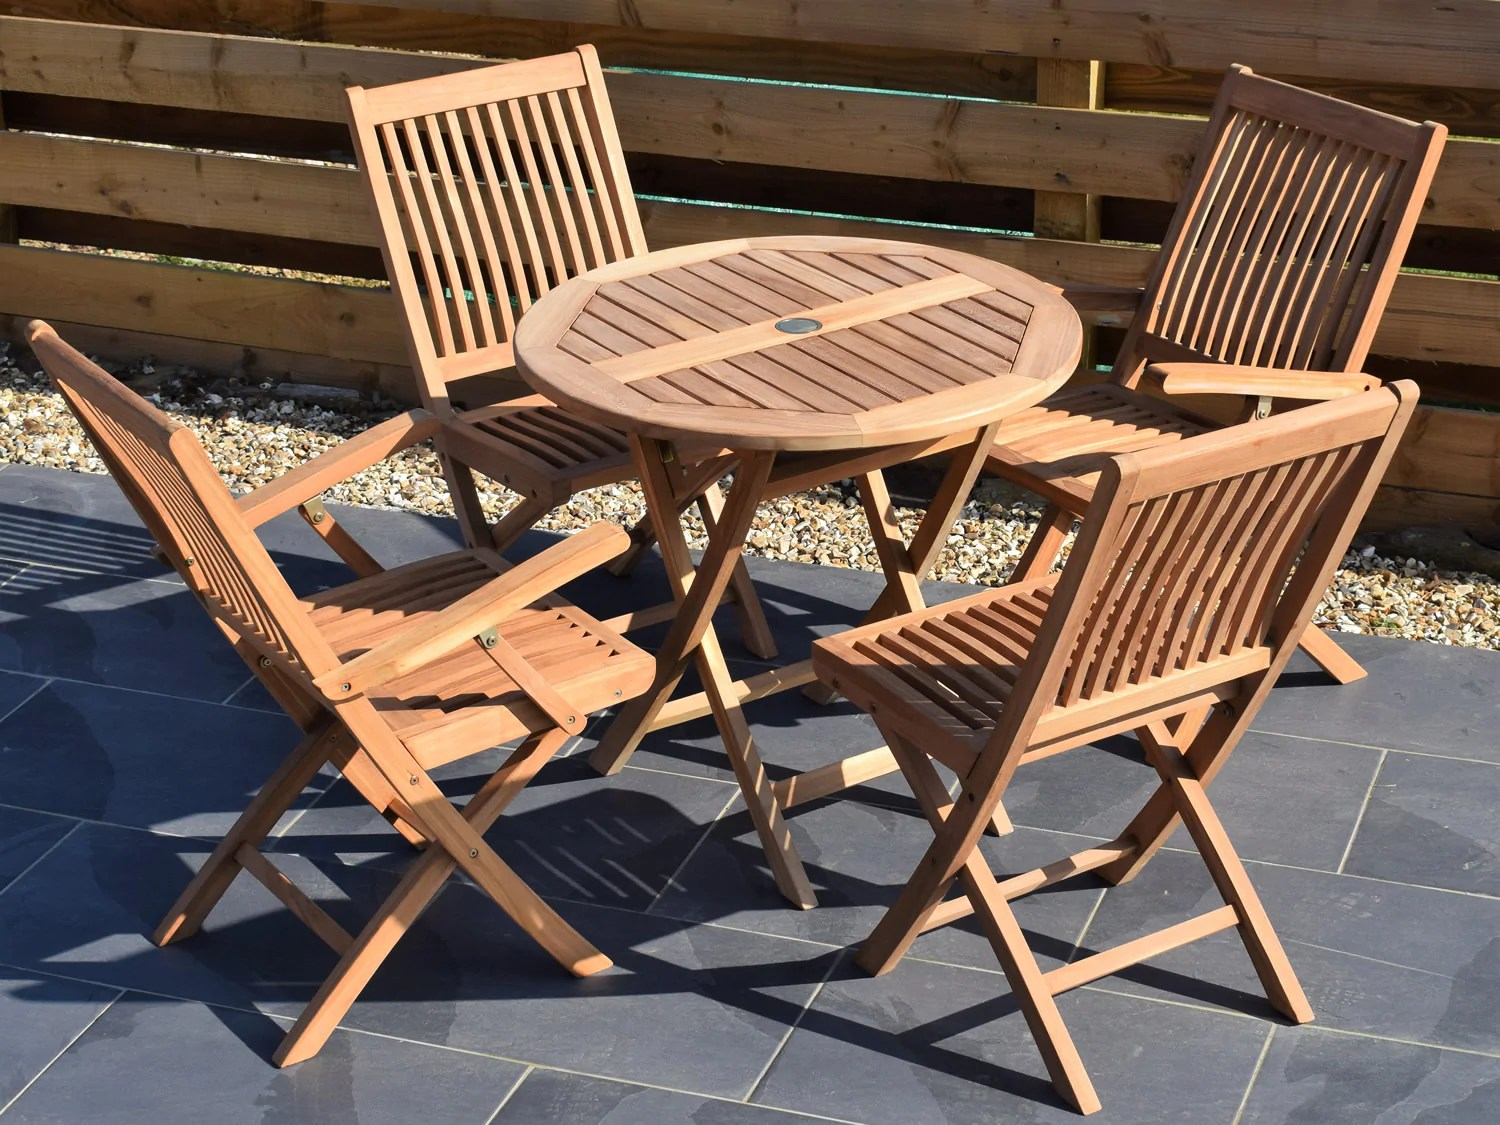 4 seater small round folding teak set with folding chairs armchairs